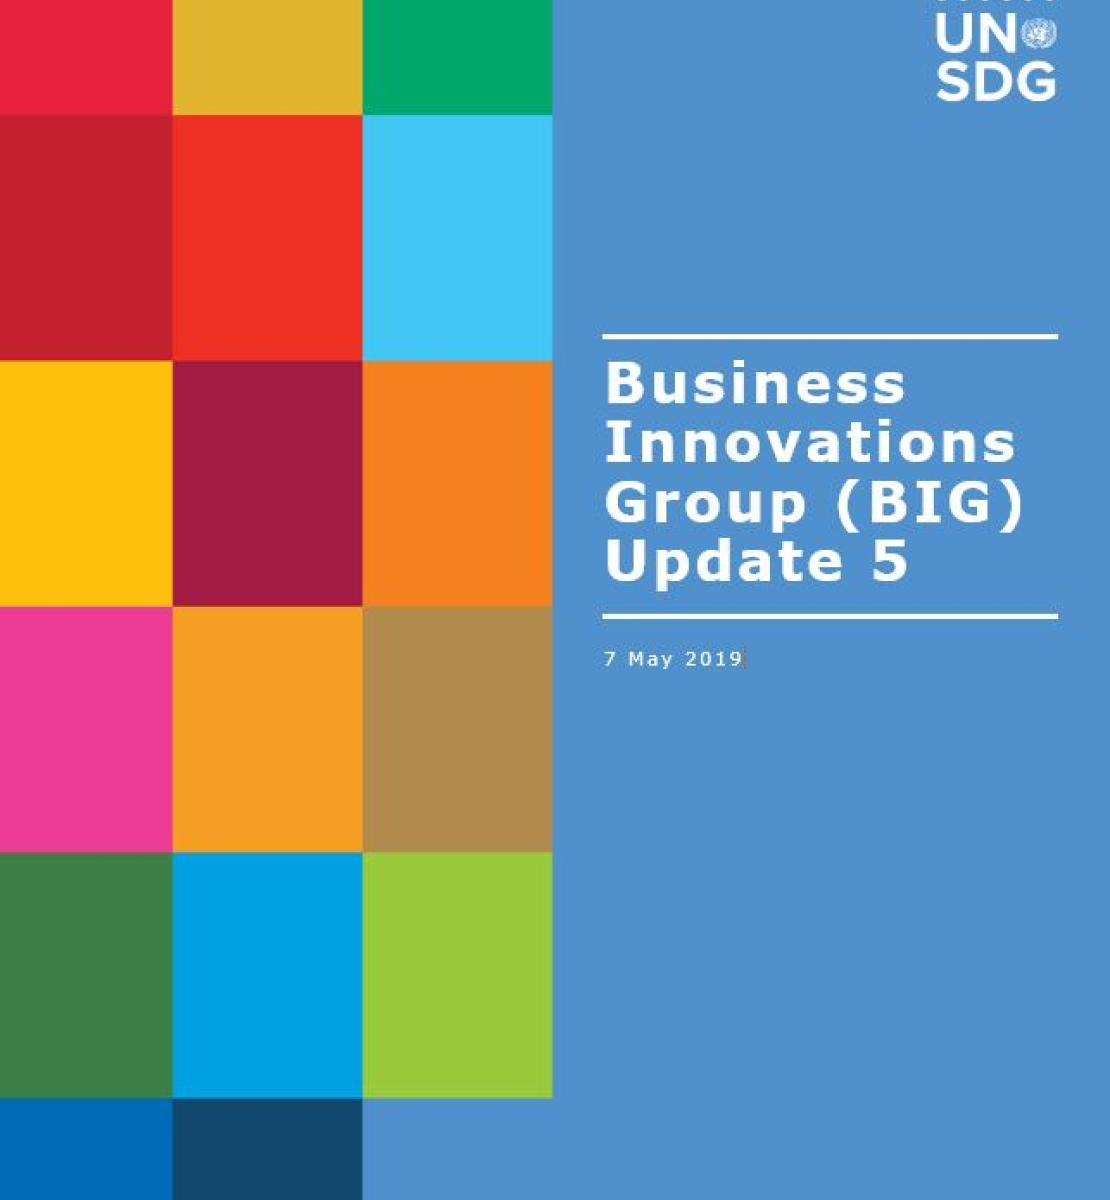 Cover shows BIG Update 5 title against a solid background by a grid of colourful rectangle grid